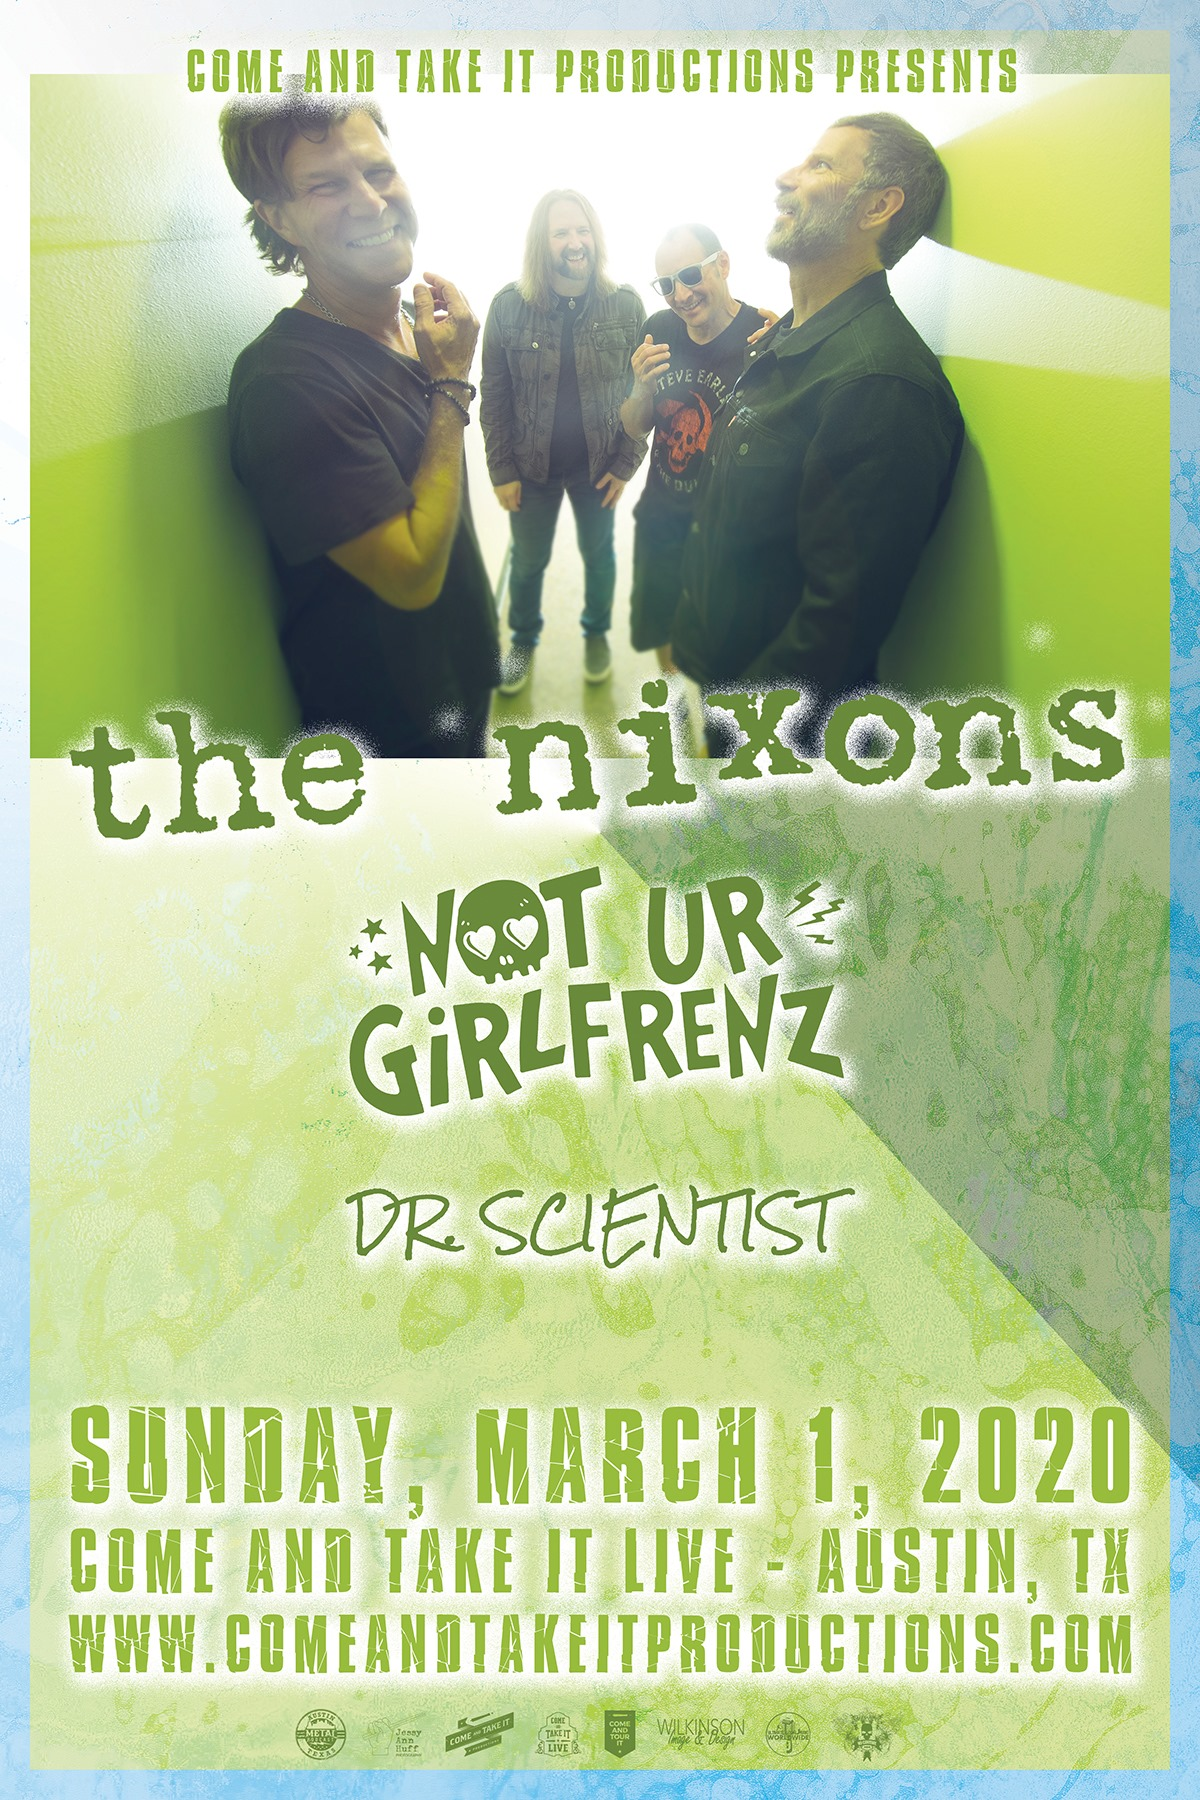 The Nixons, Not Ur Girlfrenz and Dr. Scientist